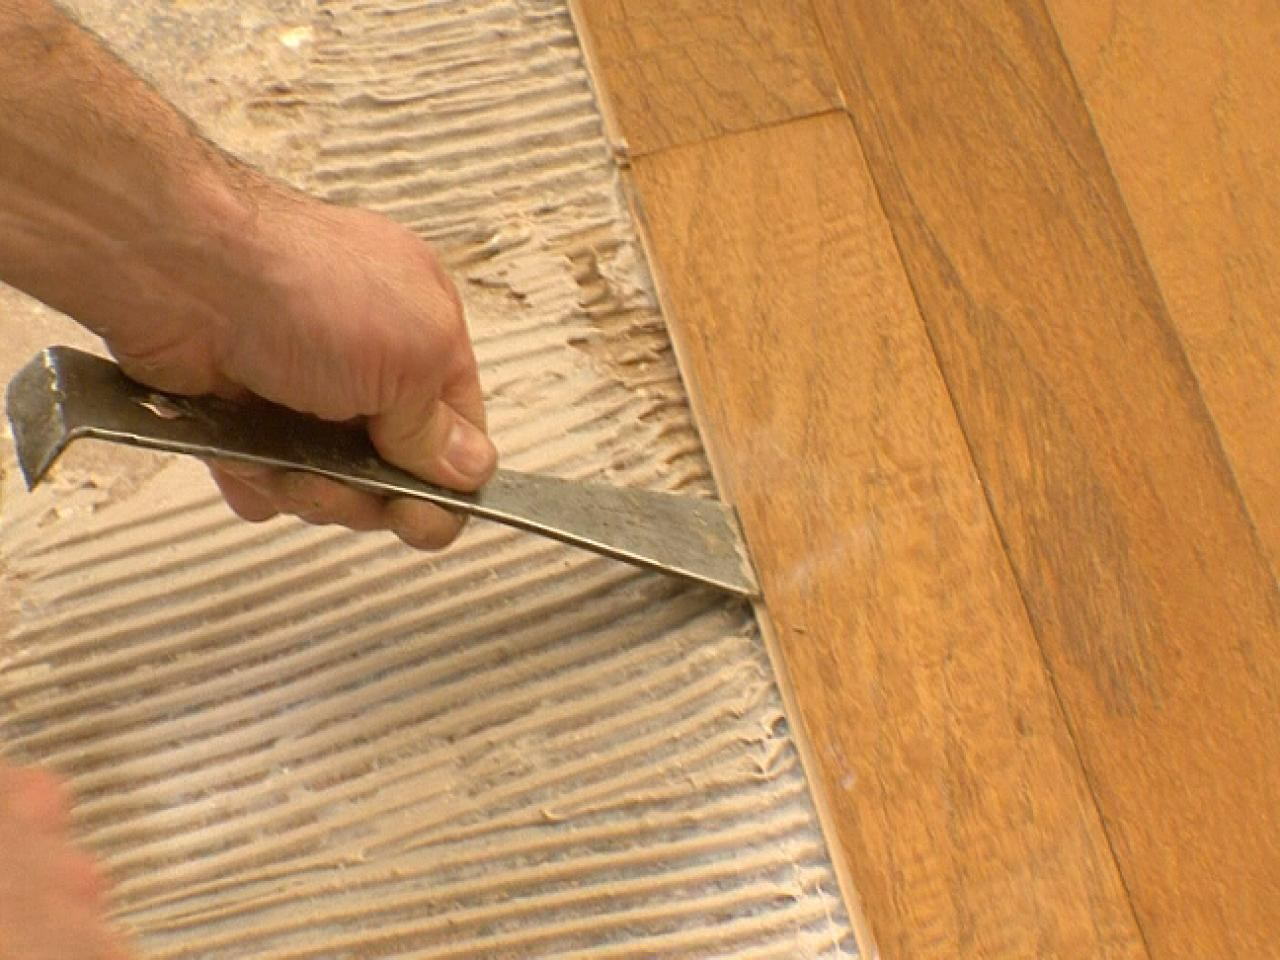 engineered wood tapping - How To Install Engineered Wood Over Concrete How-tos DIY